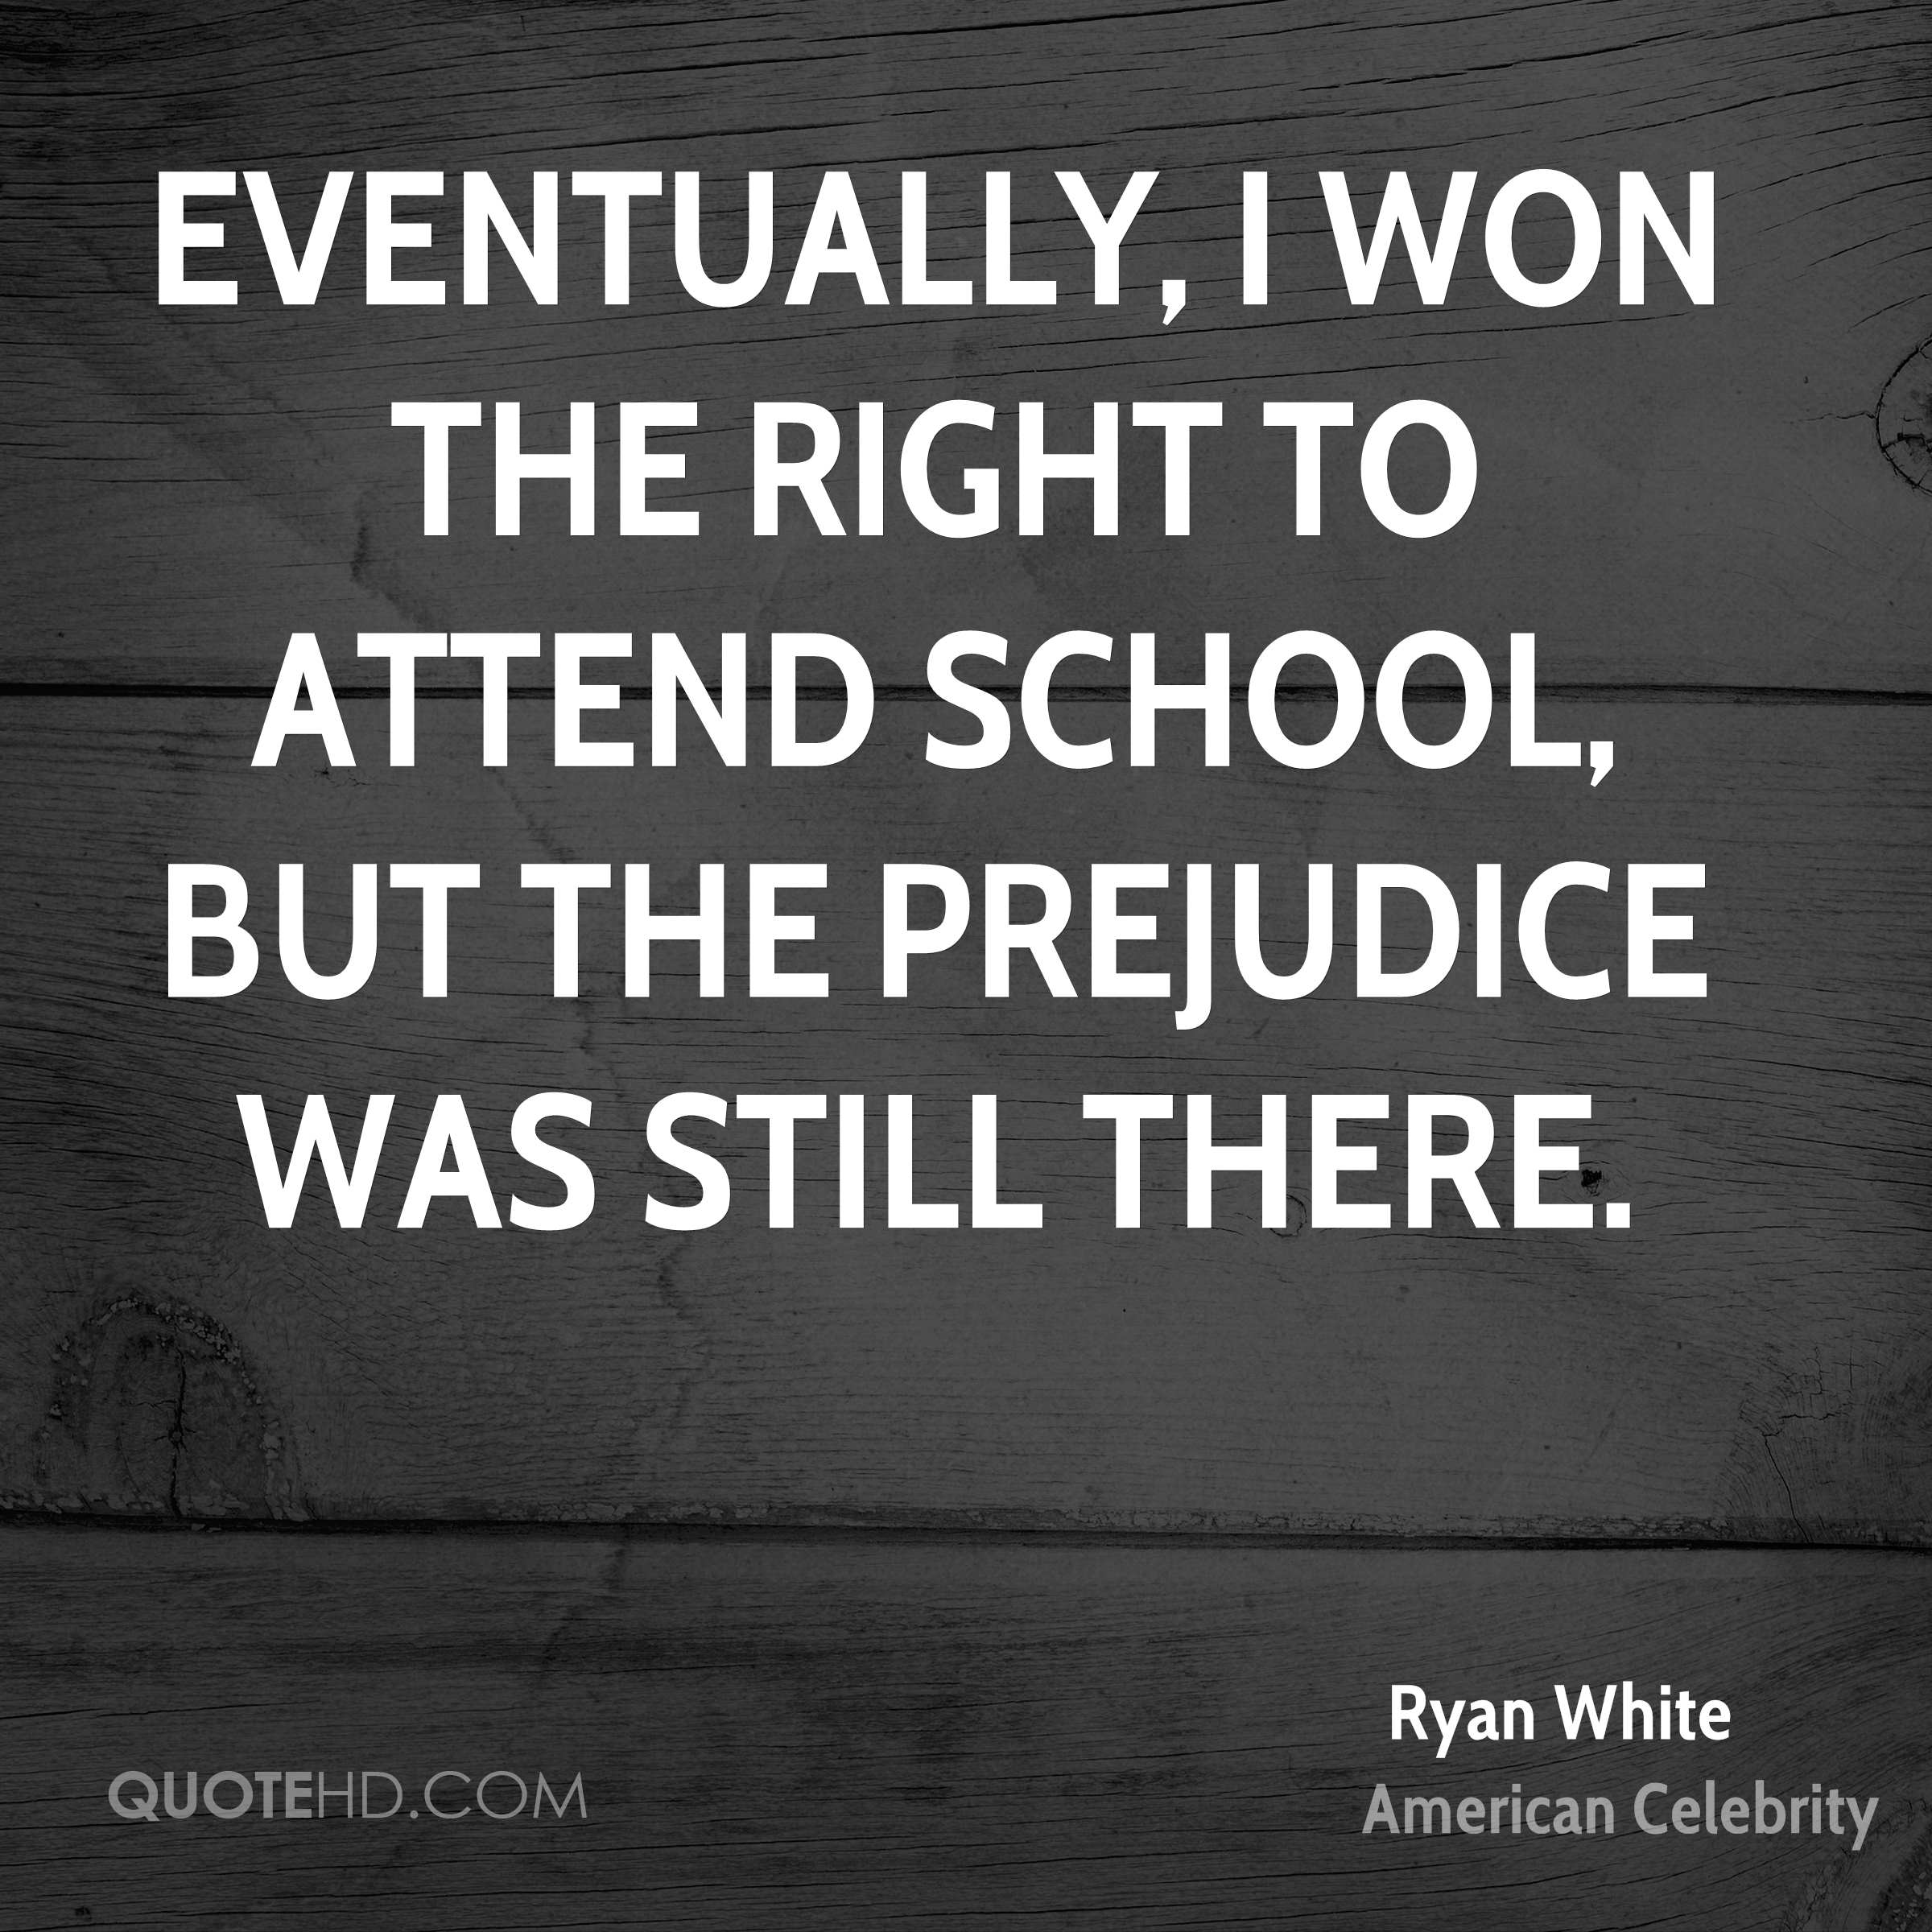 Eventually, I won the right to attend school, but the prejudice was still there.